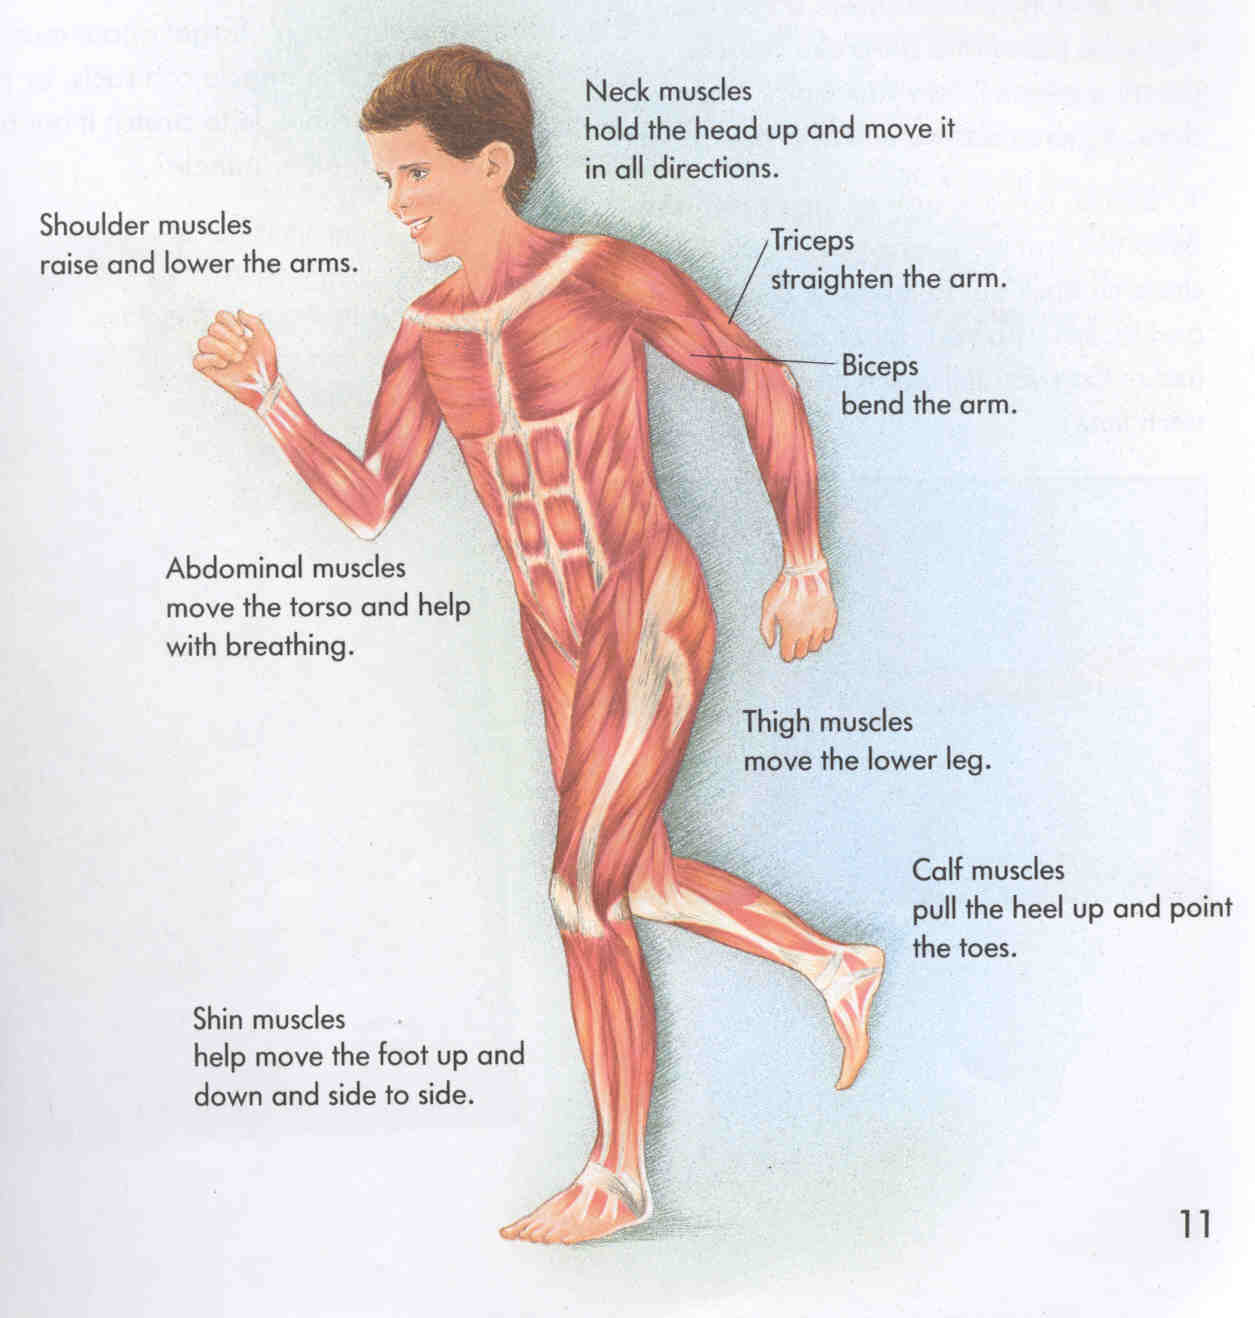 human body systems and their organs: muscular system